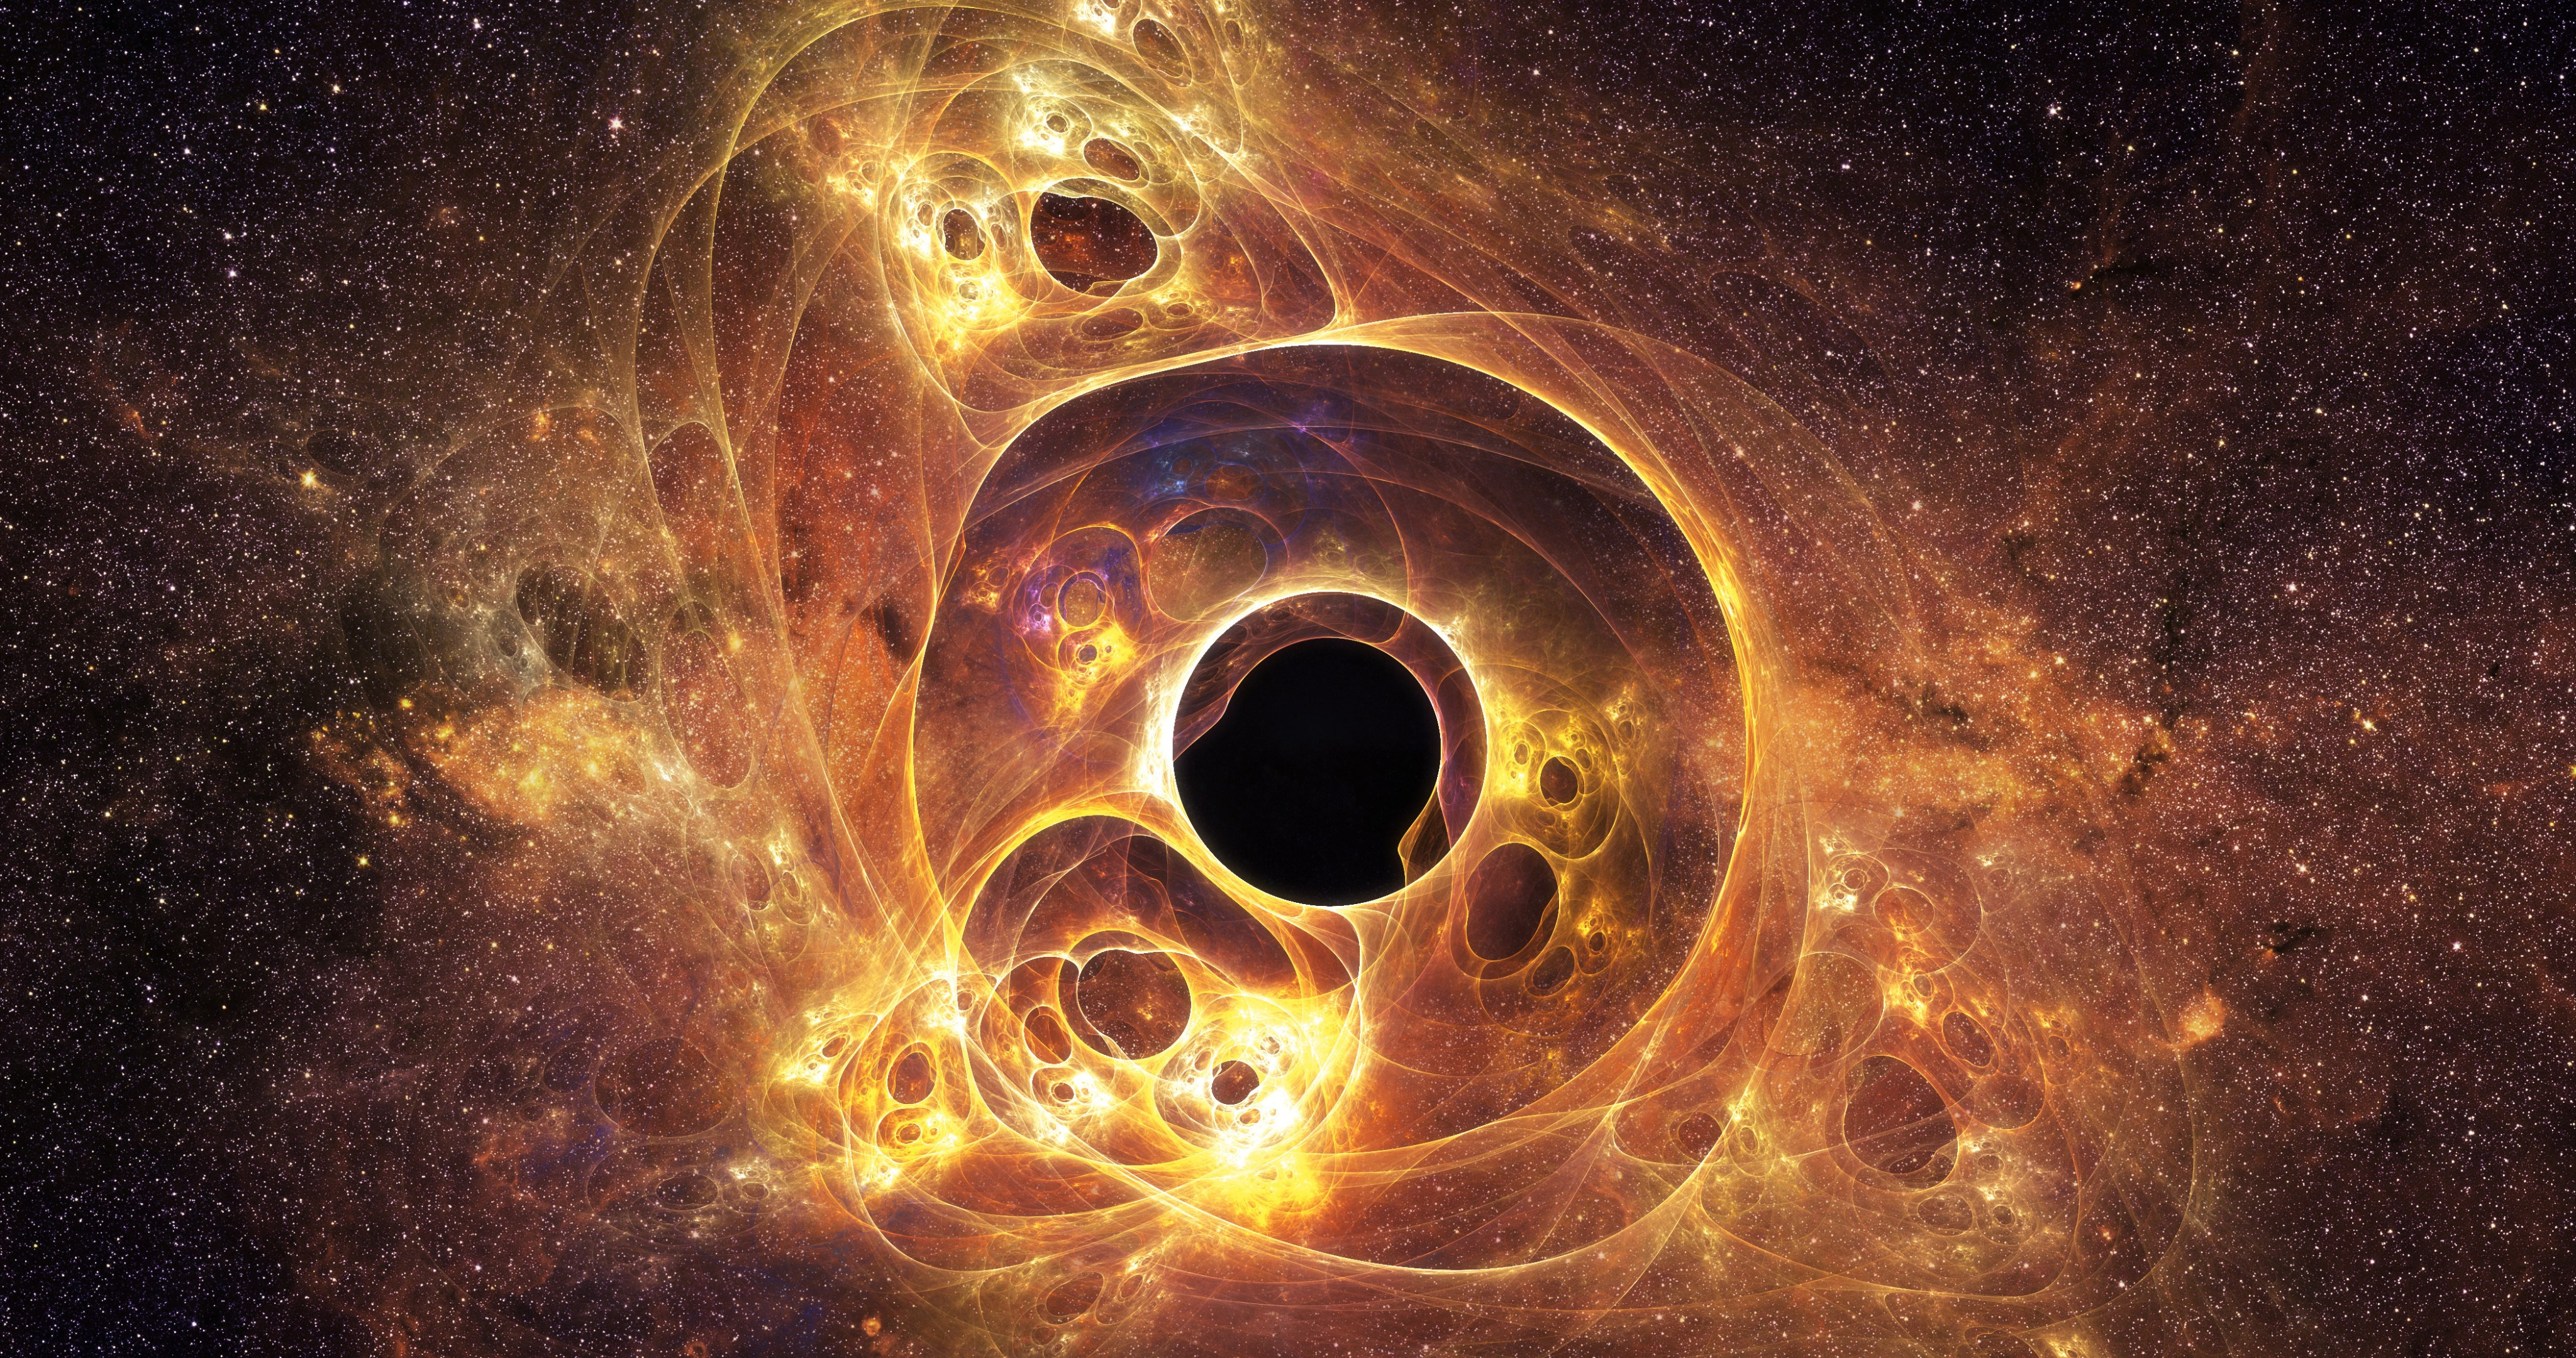 70615 black hole 4k ultra hd wallpaper  space and